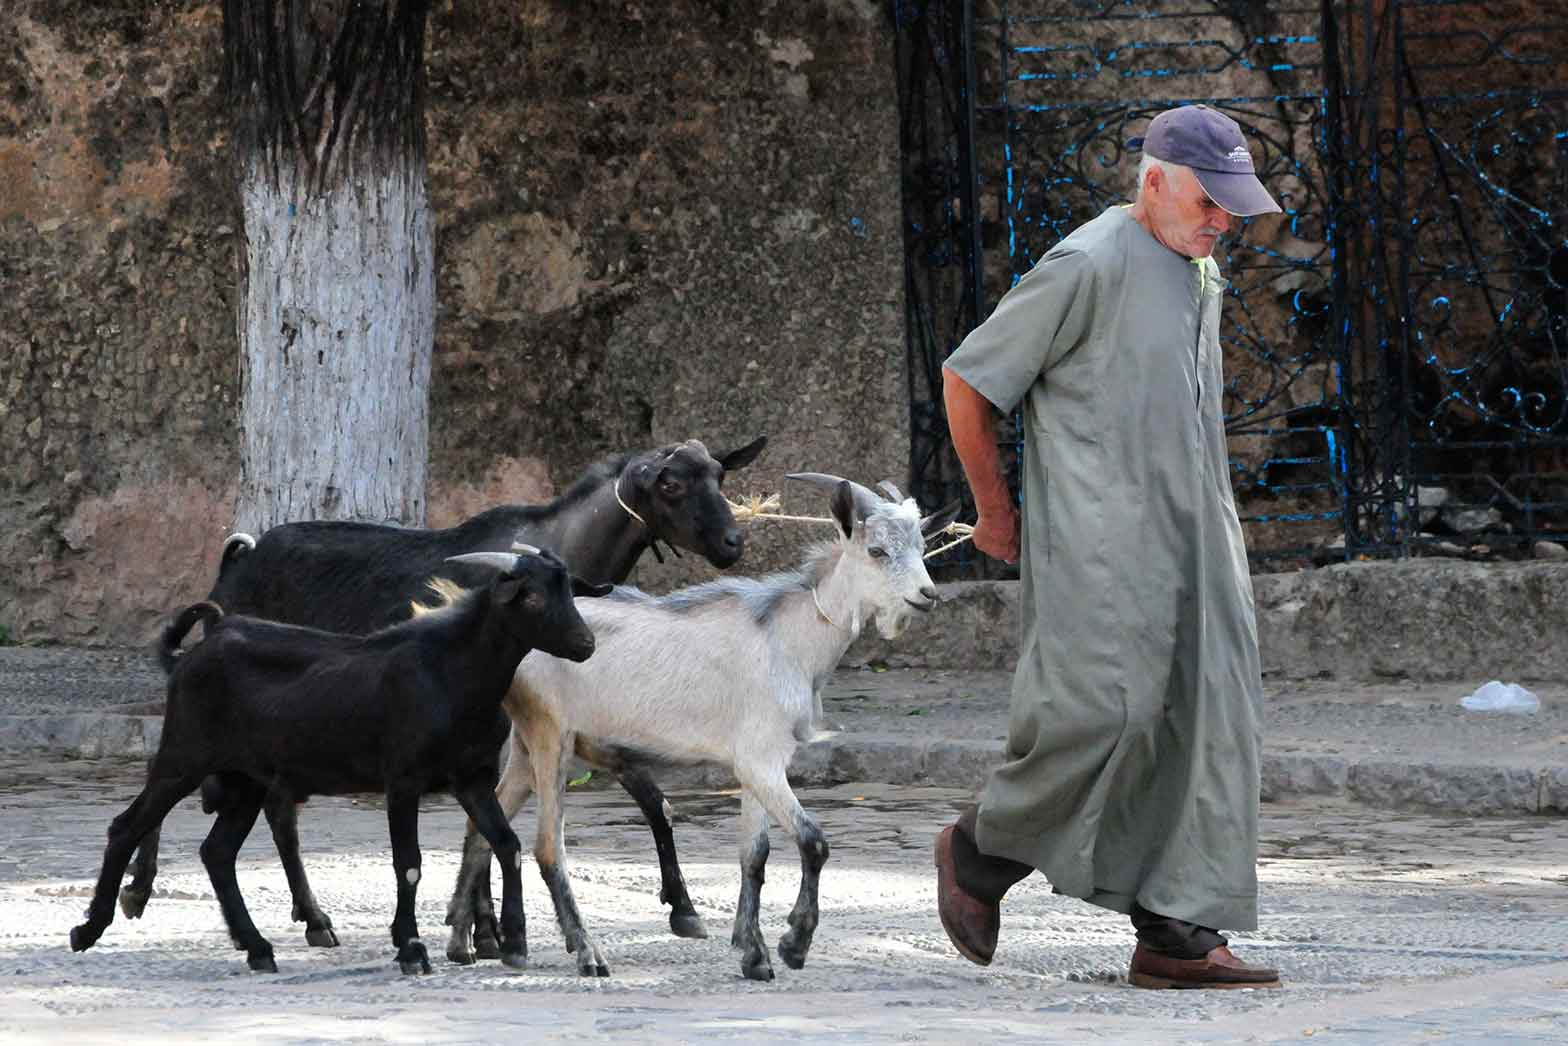 A man with goats